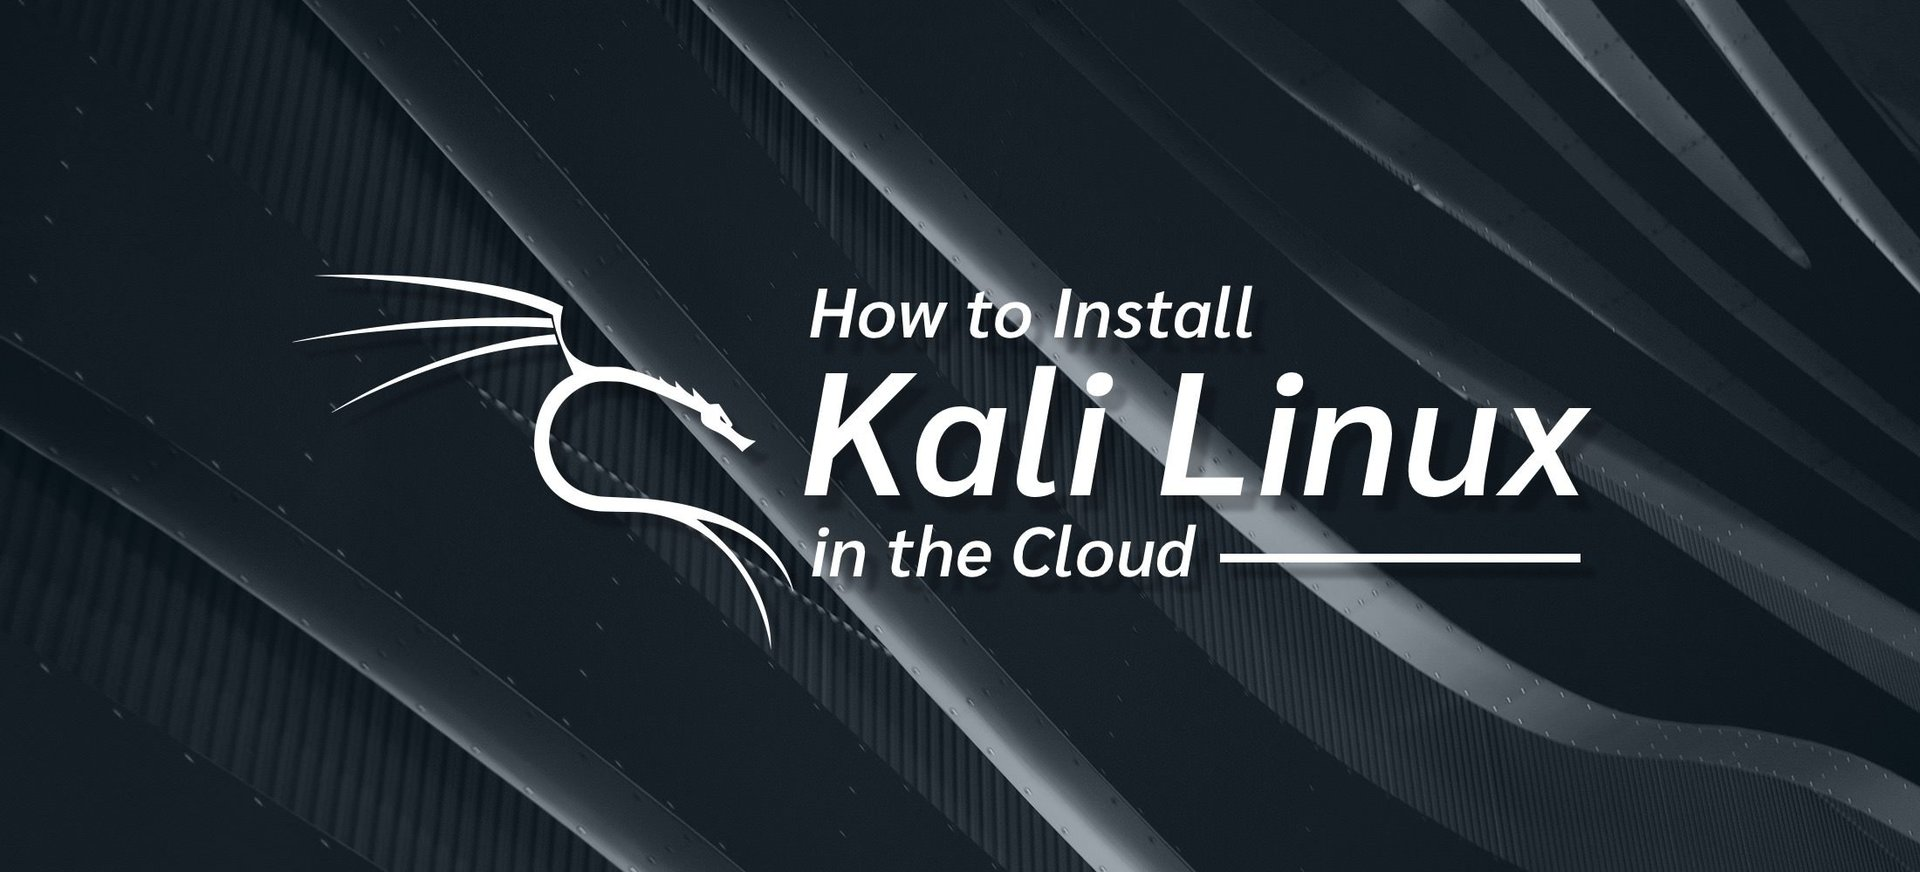 How to Install Kali Linux in the Cloud.